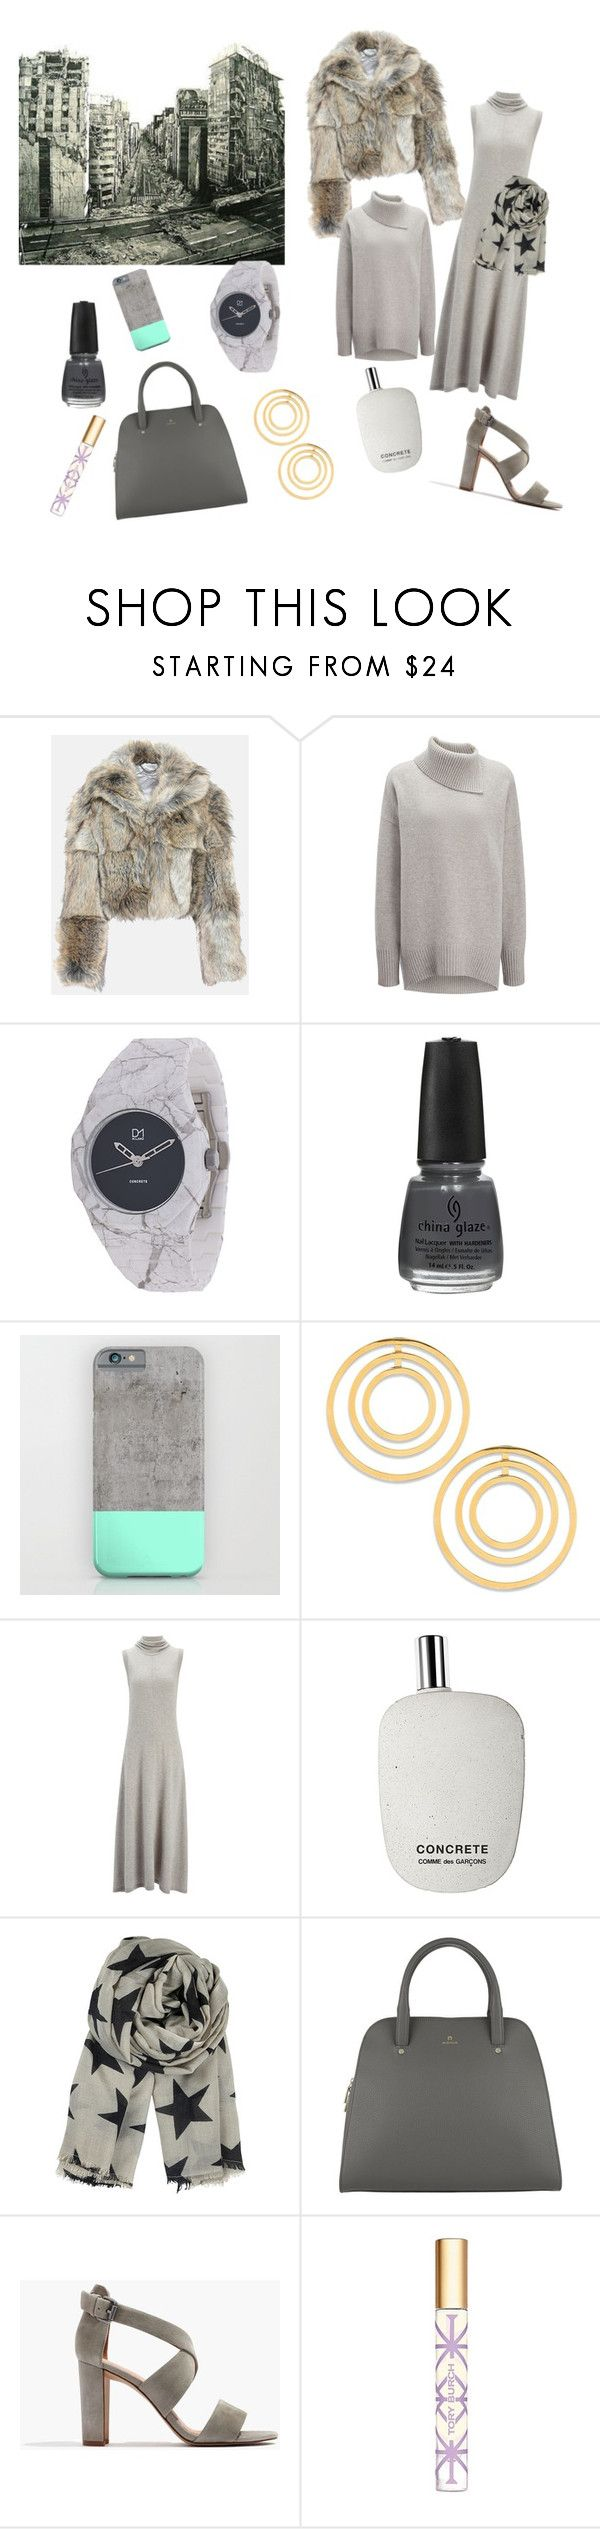 """Concrete Jungle"" by bromaxx ❤ liked on Polyvore featuring STELLA McCARTNEY, Joseph, d1 Milano, China Glaze, Lele Sadoughi, Comme des Garçons, BeckSöndergaard, Etienne Aigner, Madewell and Tory Burch"